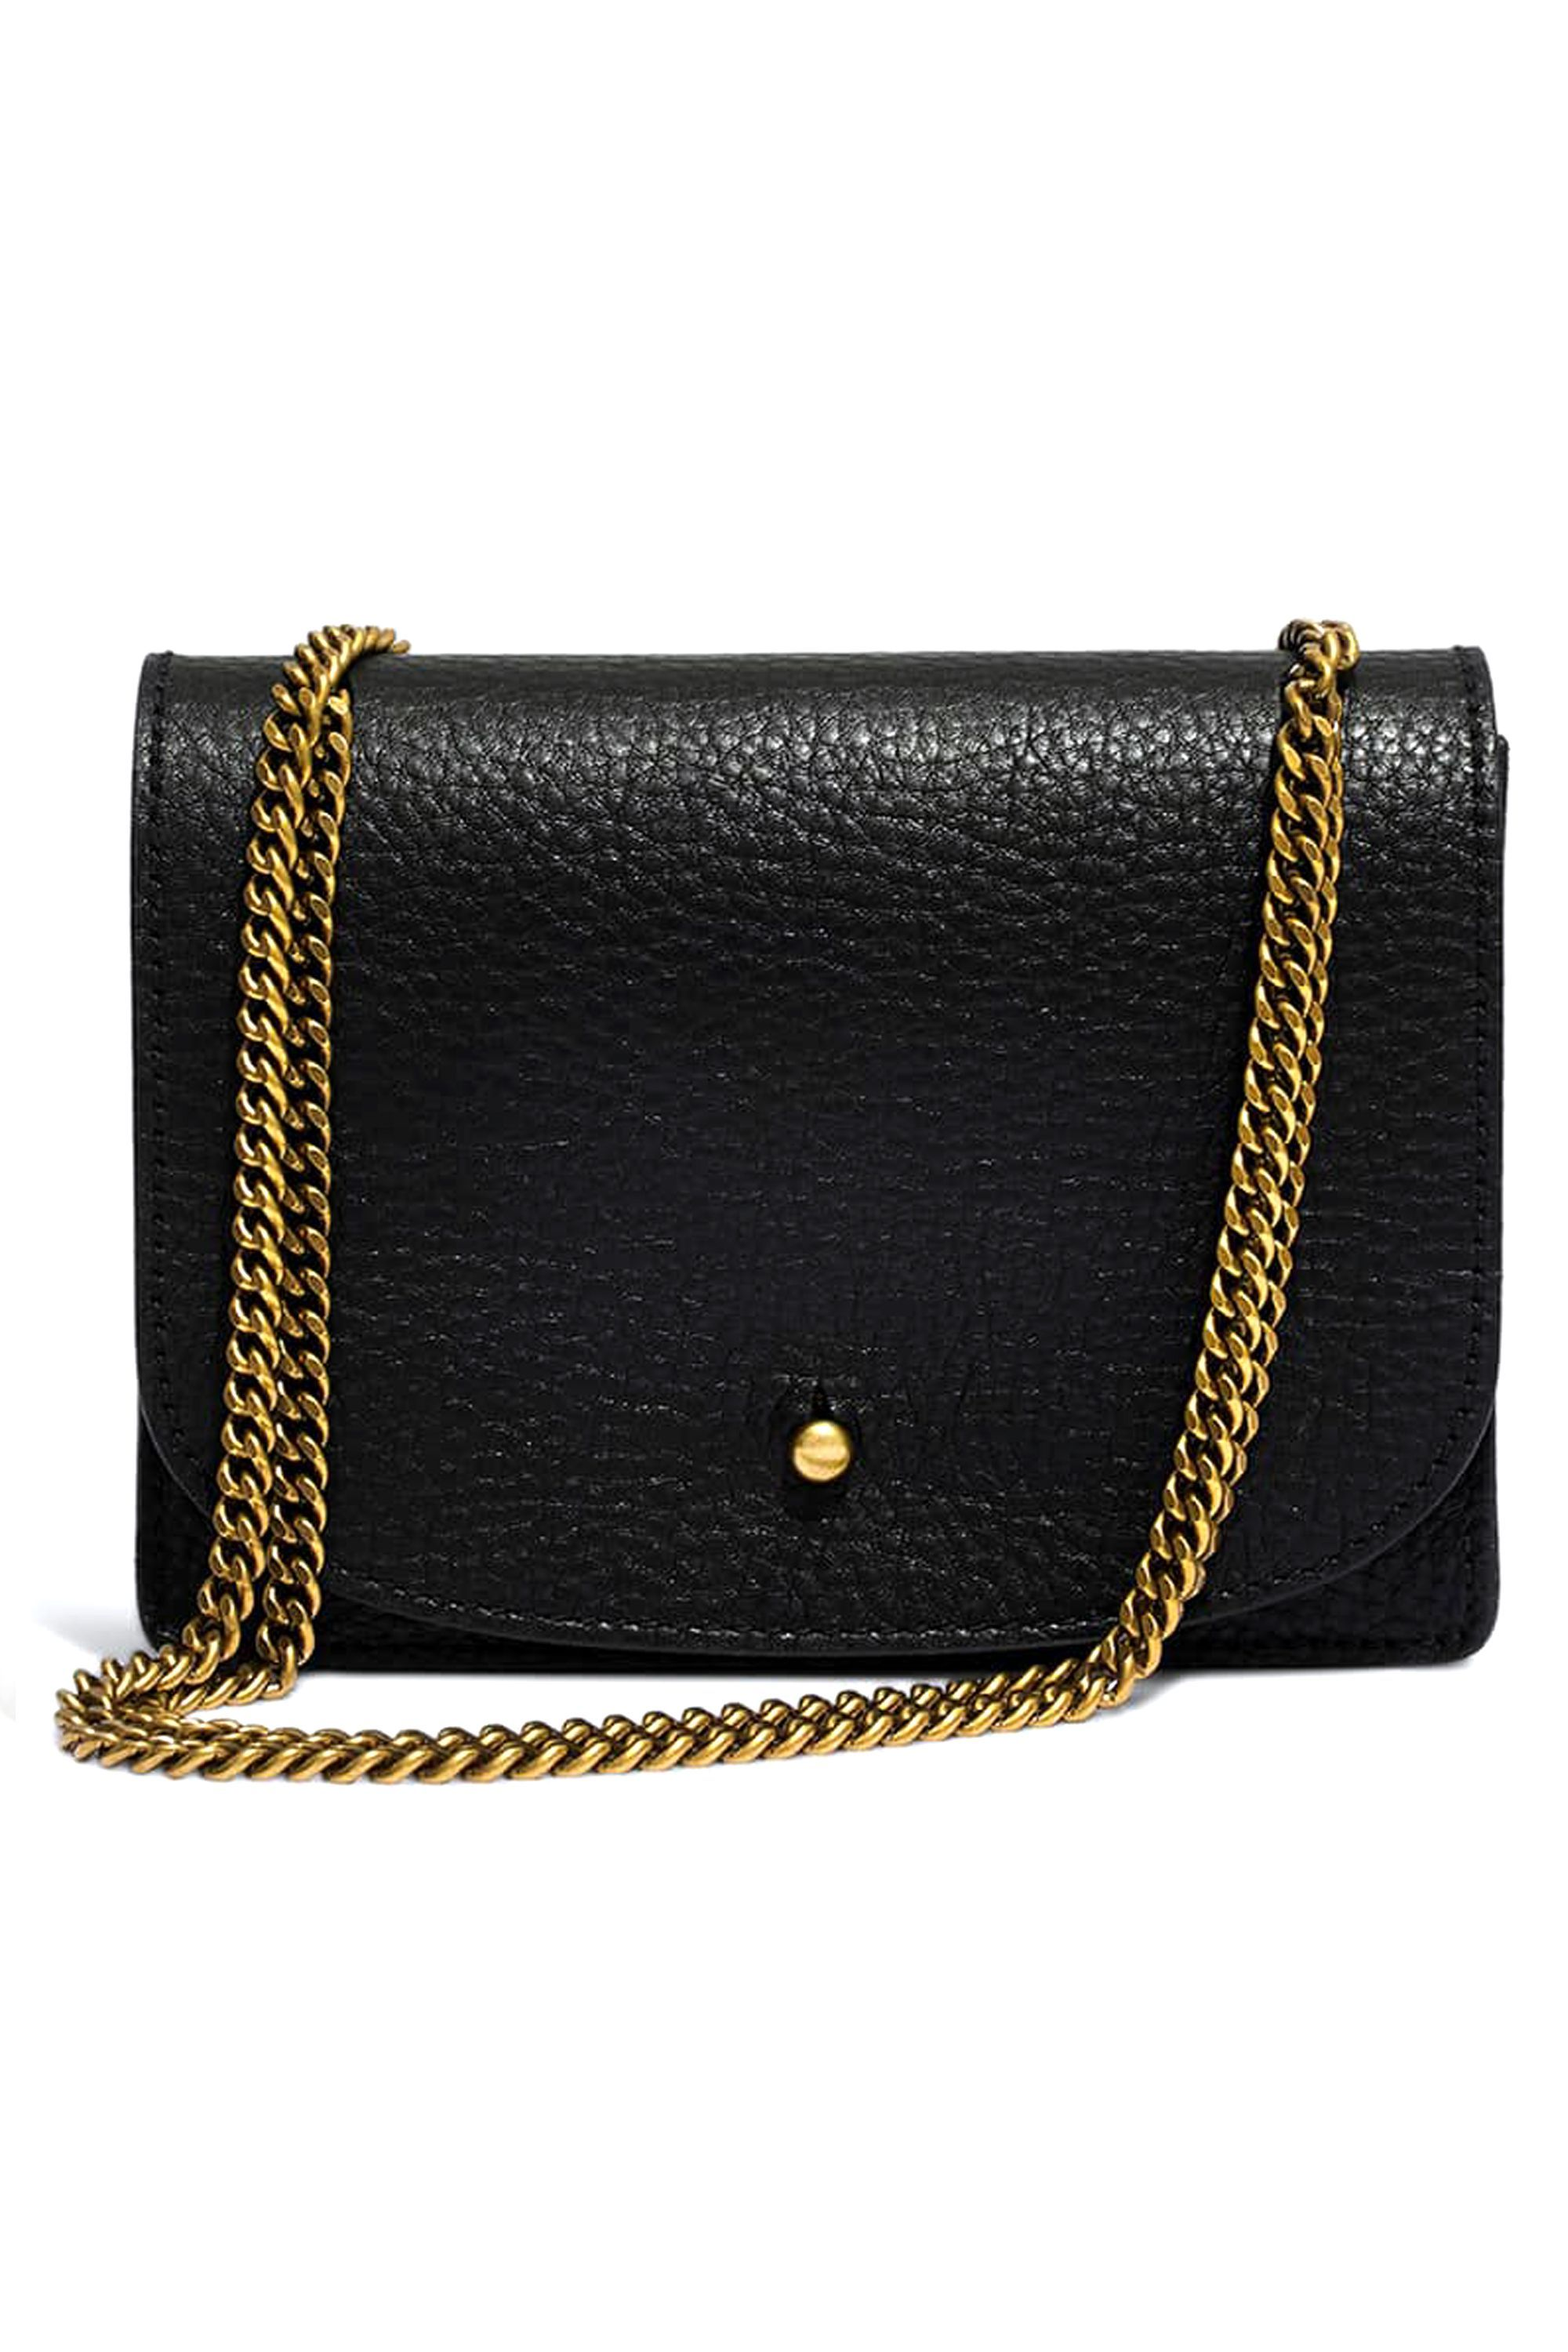 664332ecd1a107 11 Spring Bag Trends 2019 — Top Spring Accessory Runway Trends For Women